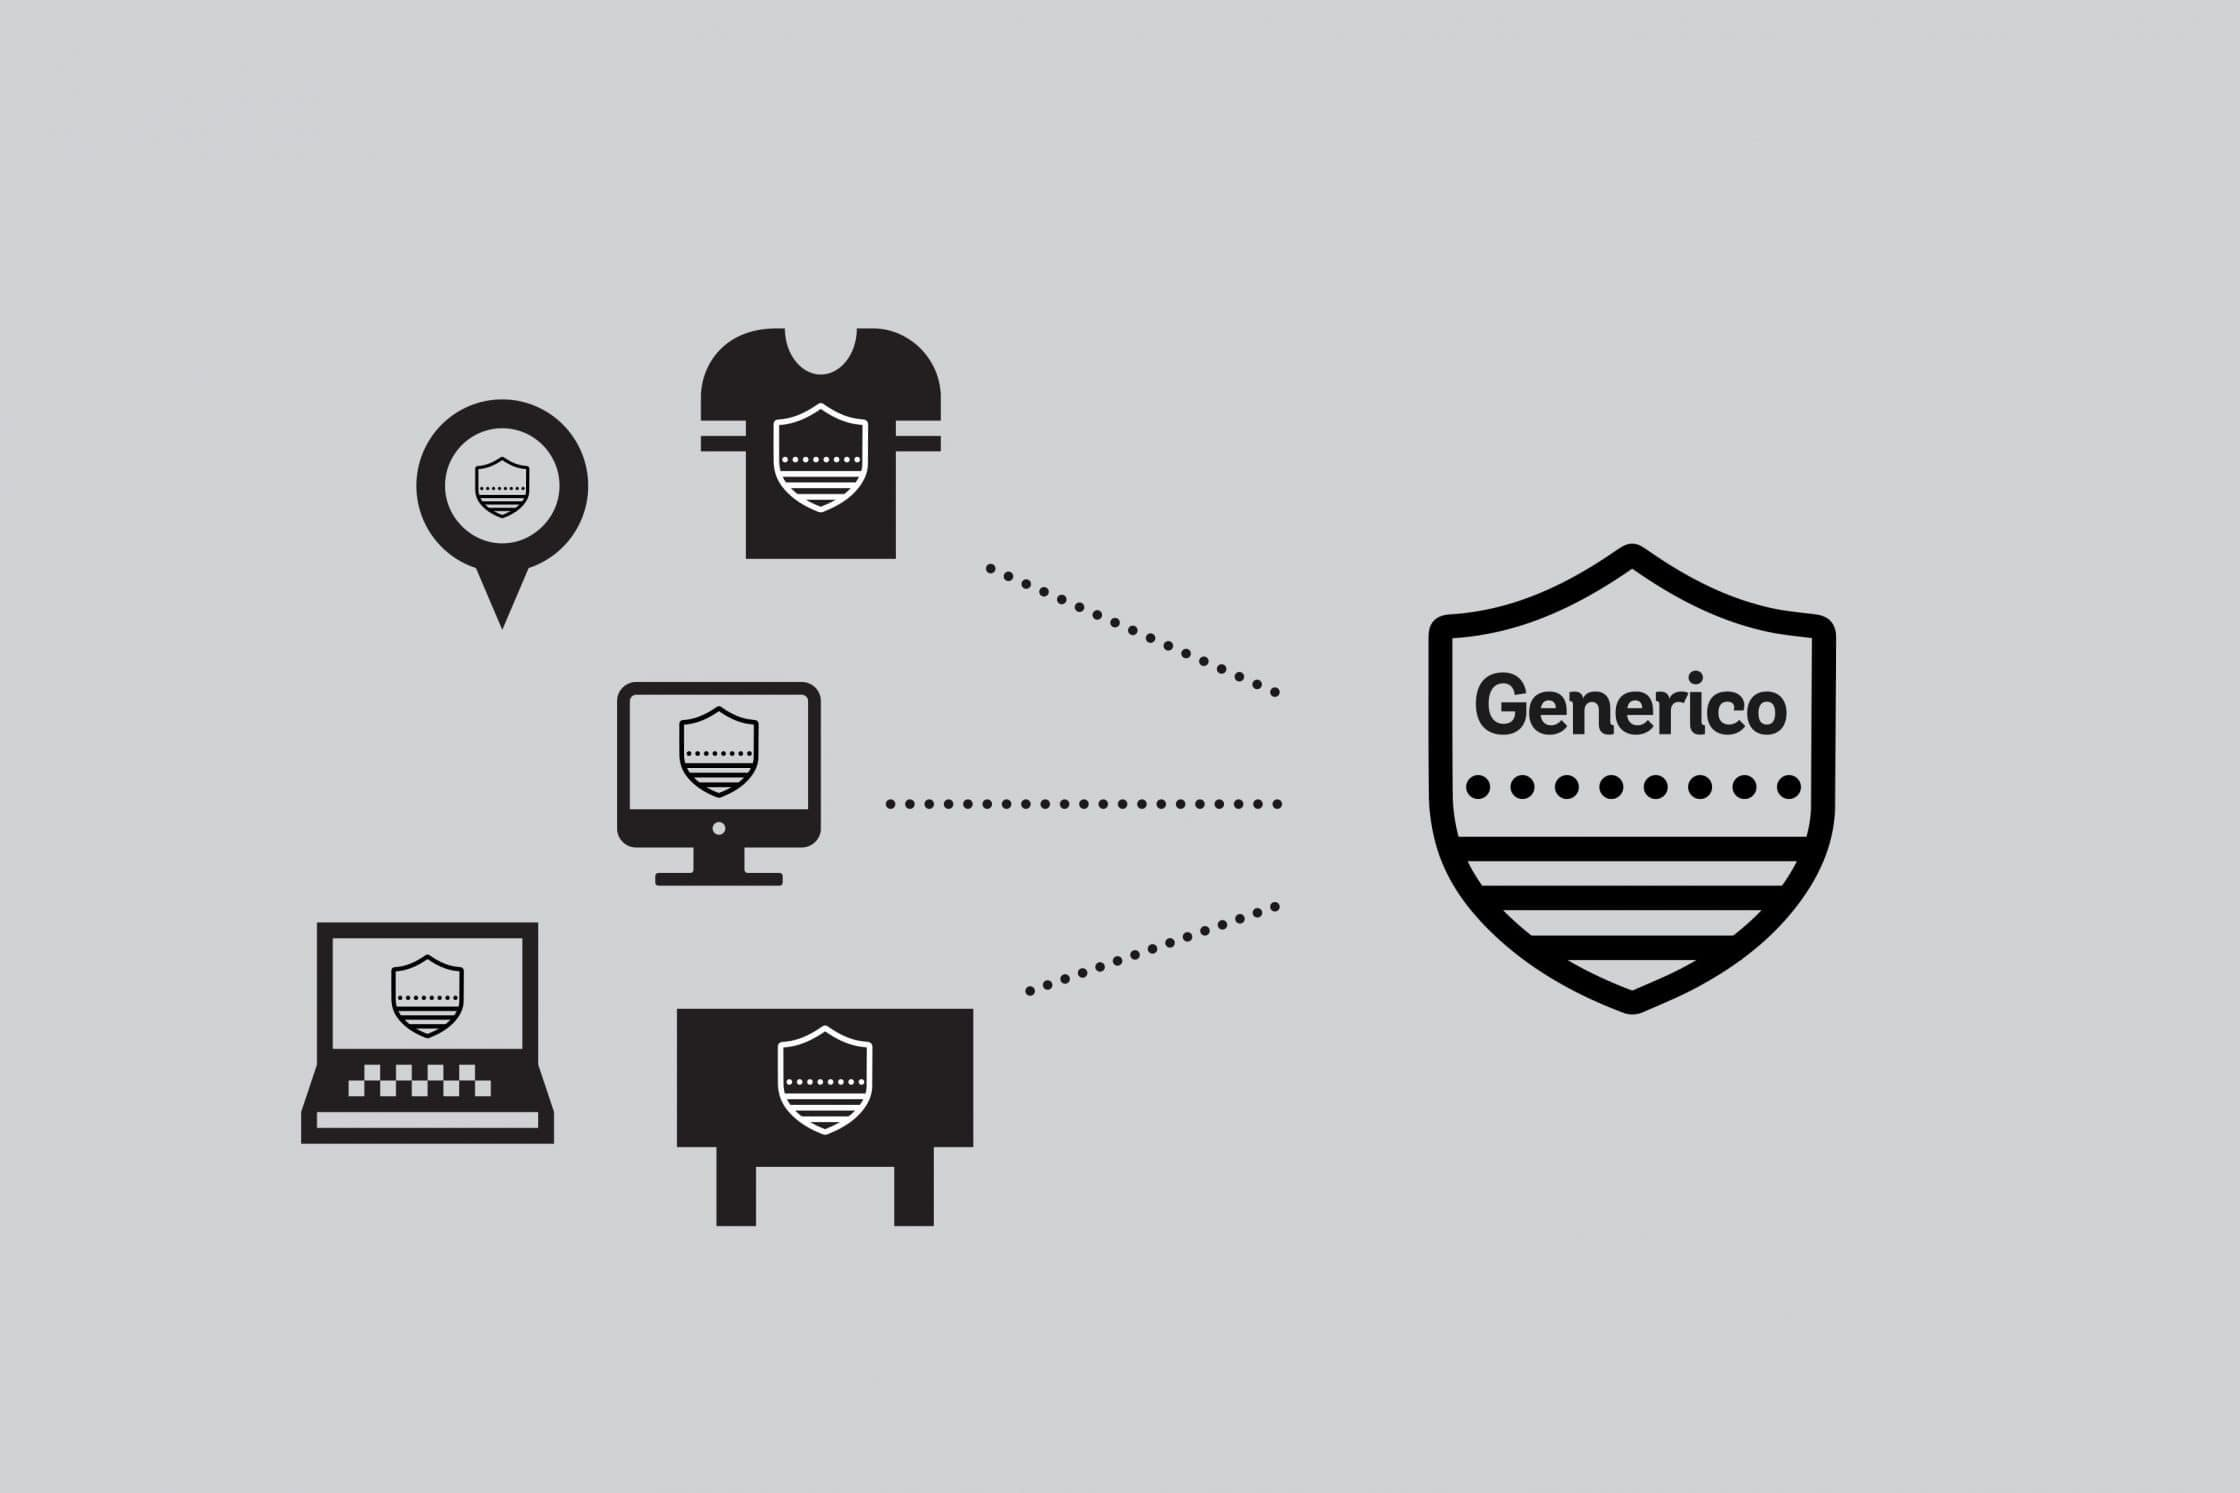 Testing the Generico logo on several object and devices.